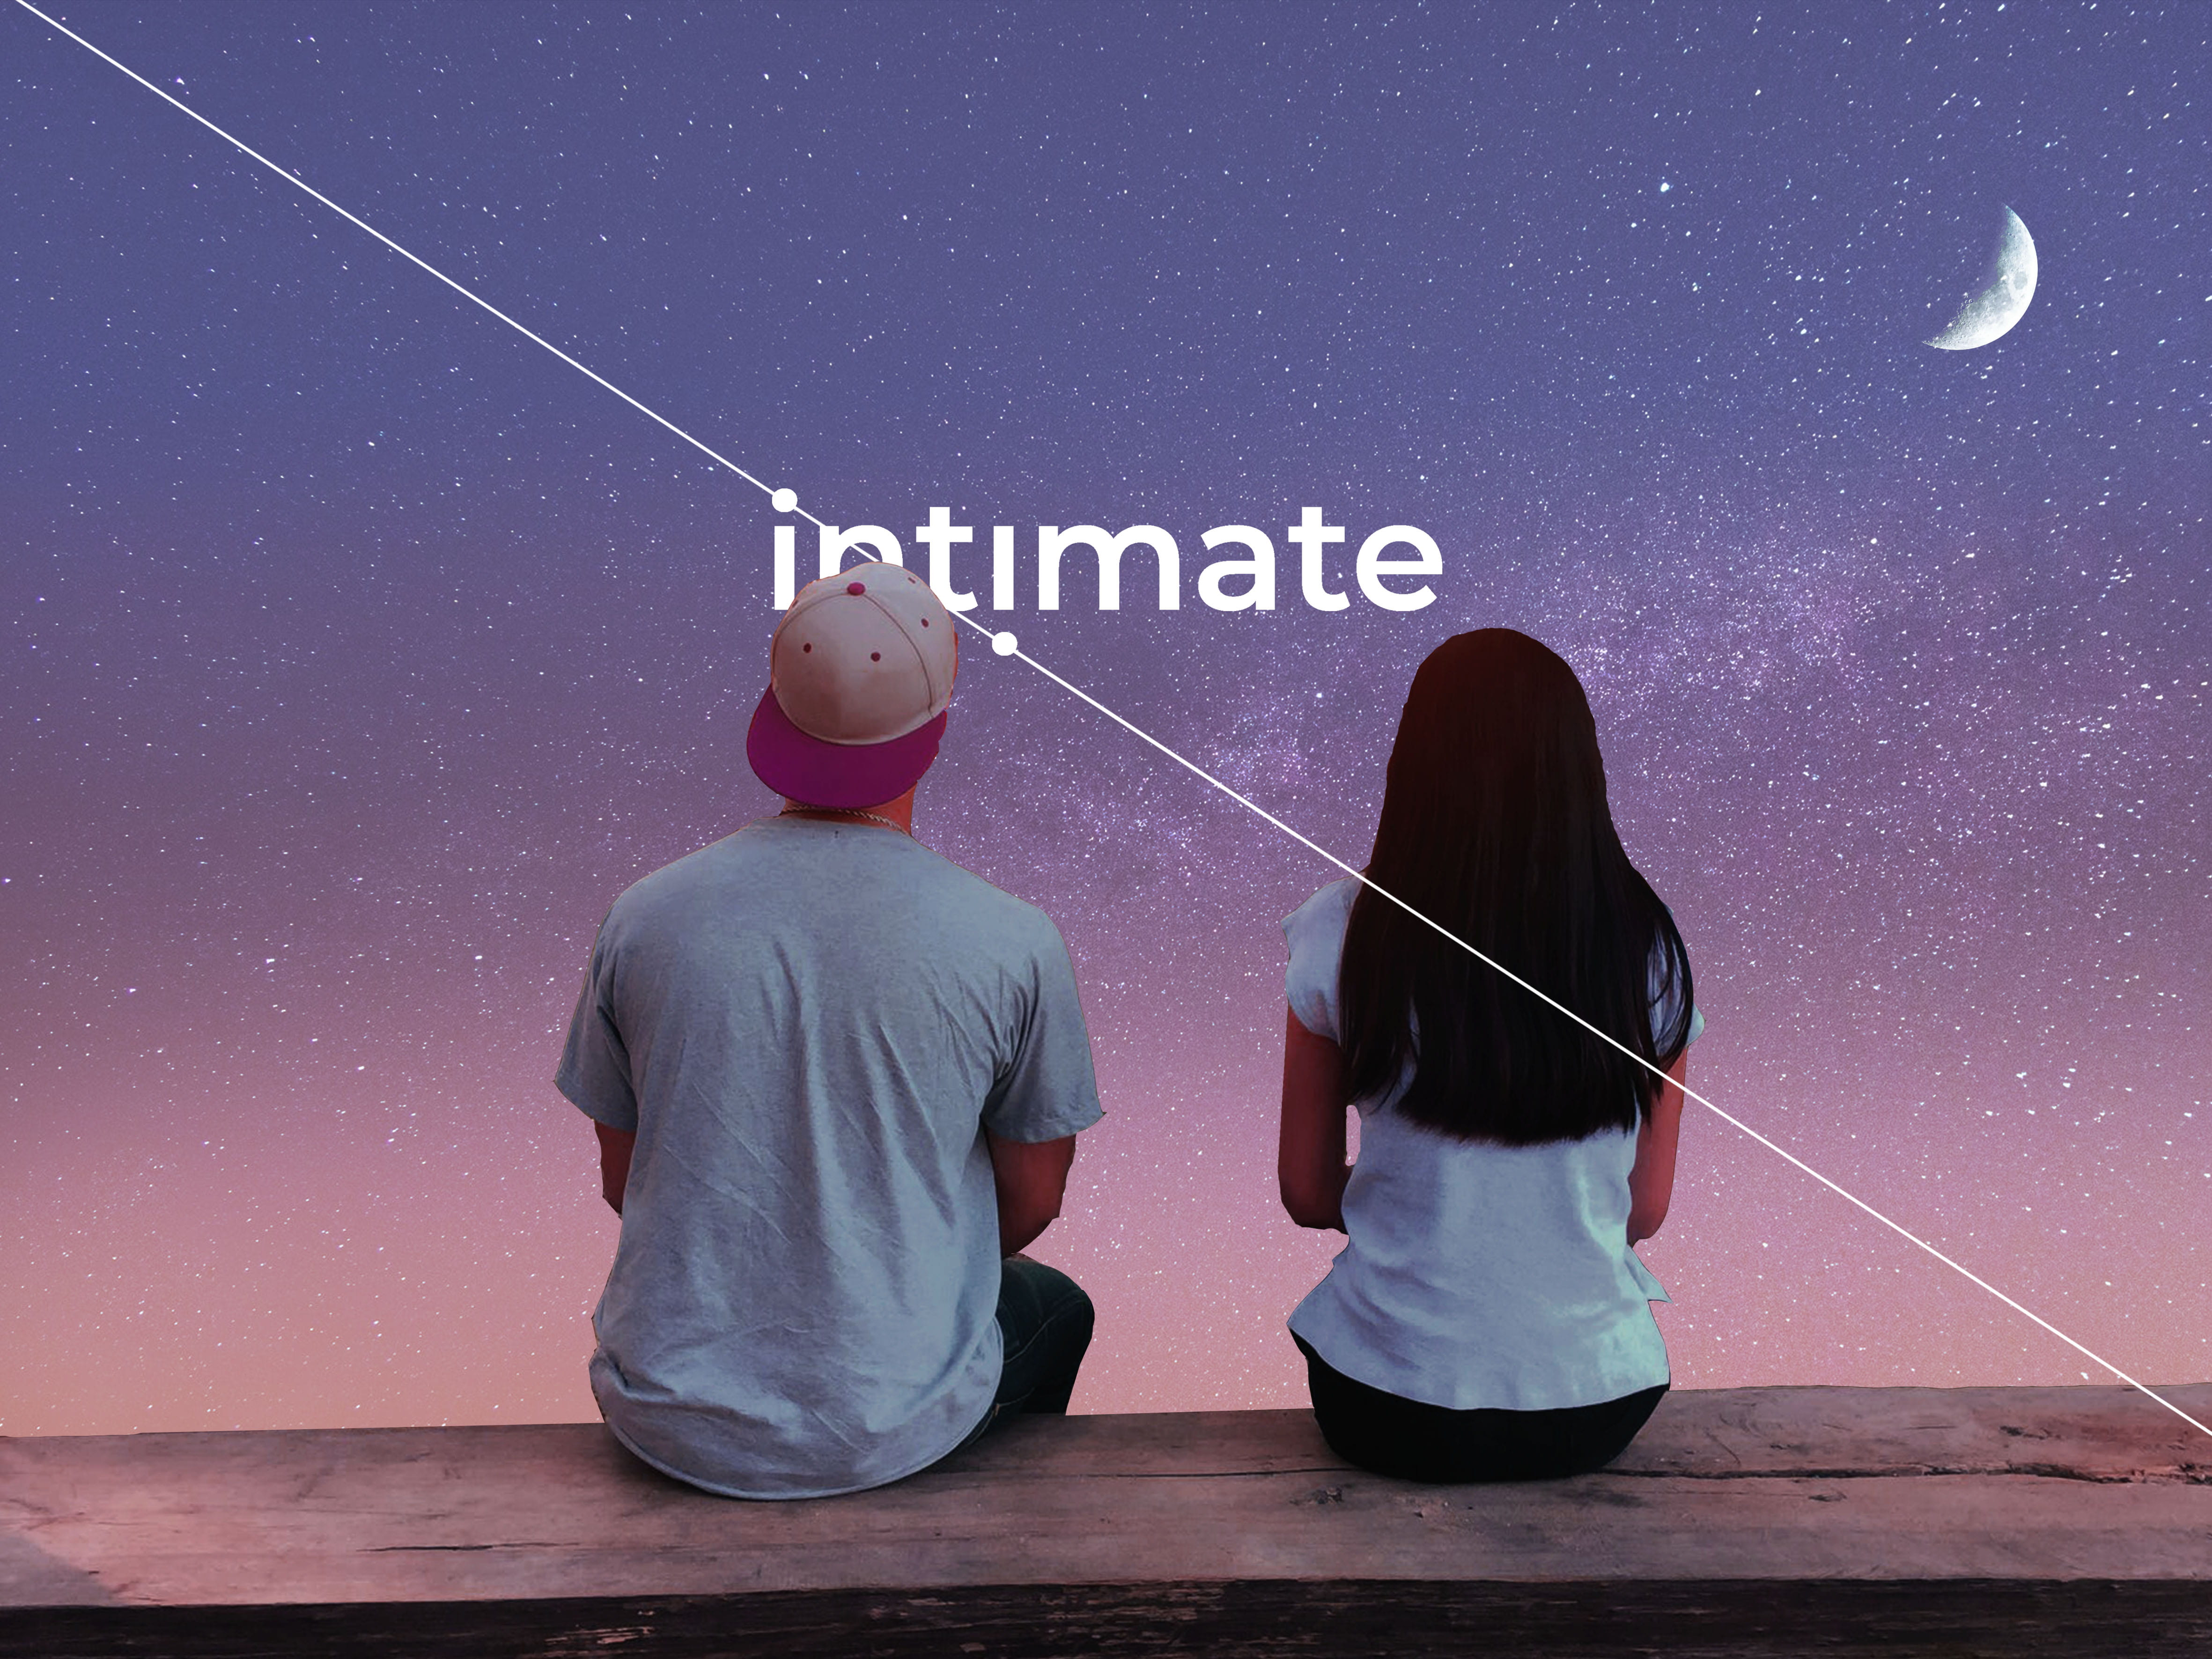 A man and woman sitting on a ledge, looking out onto a field of stars against a blue sky. Title reads: Intimate.